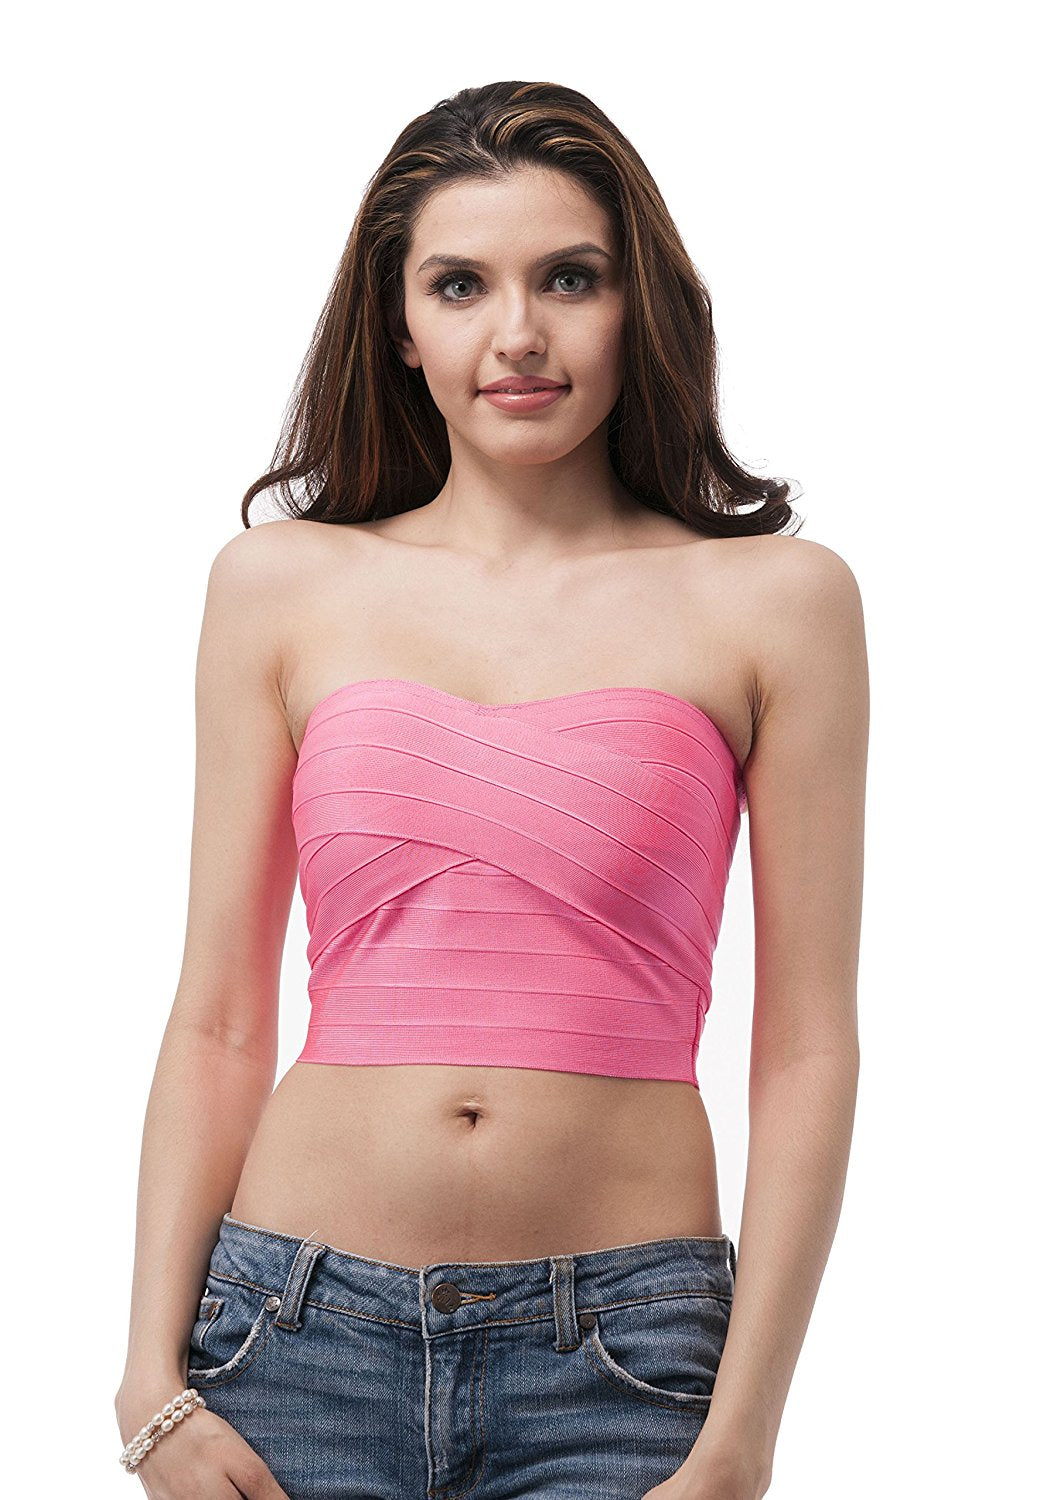 Hollywood Star Fashion Tube Top Bandage Style Crop Top With Zipper On The Back